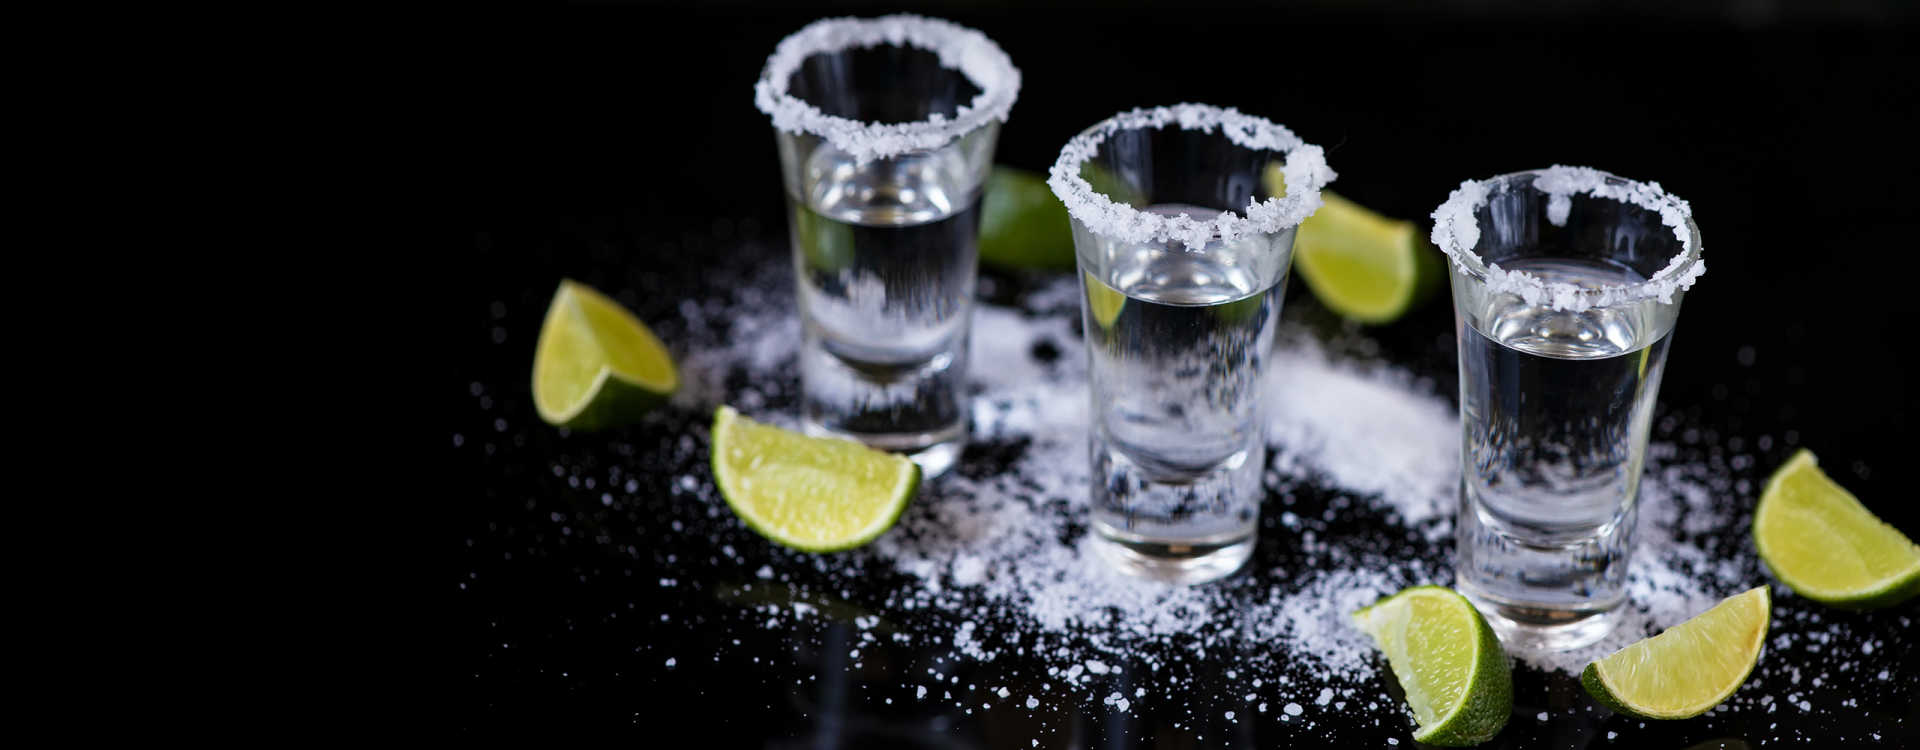 Image for Tequila Blanco - Silver content section